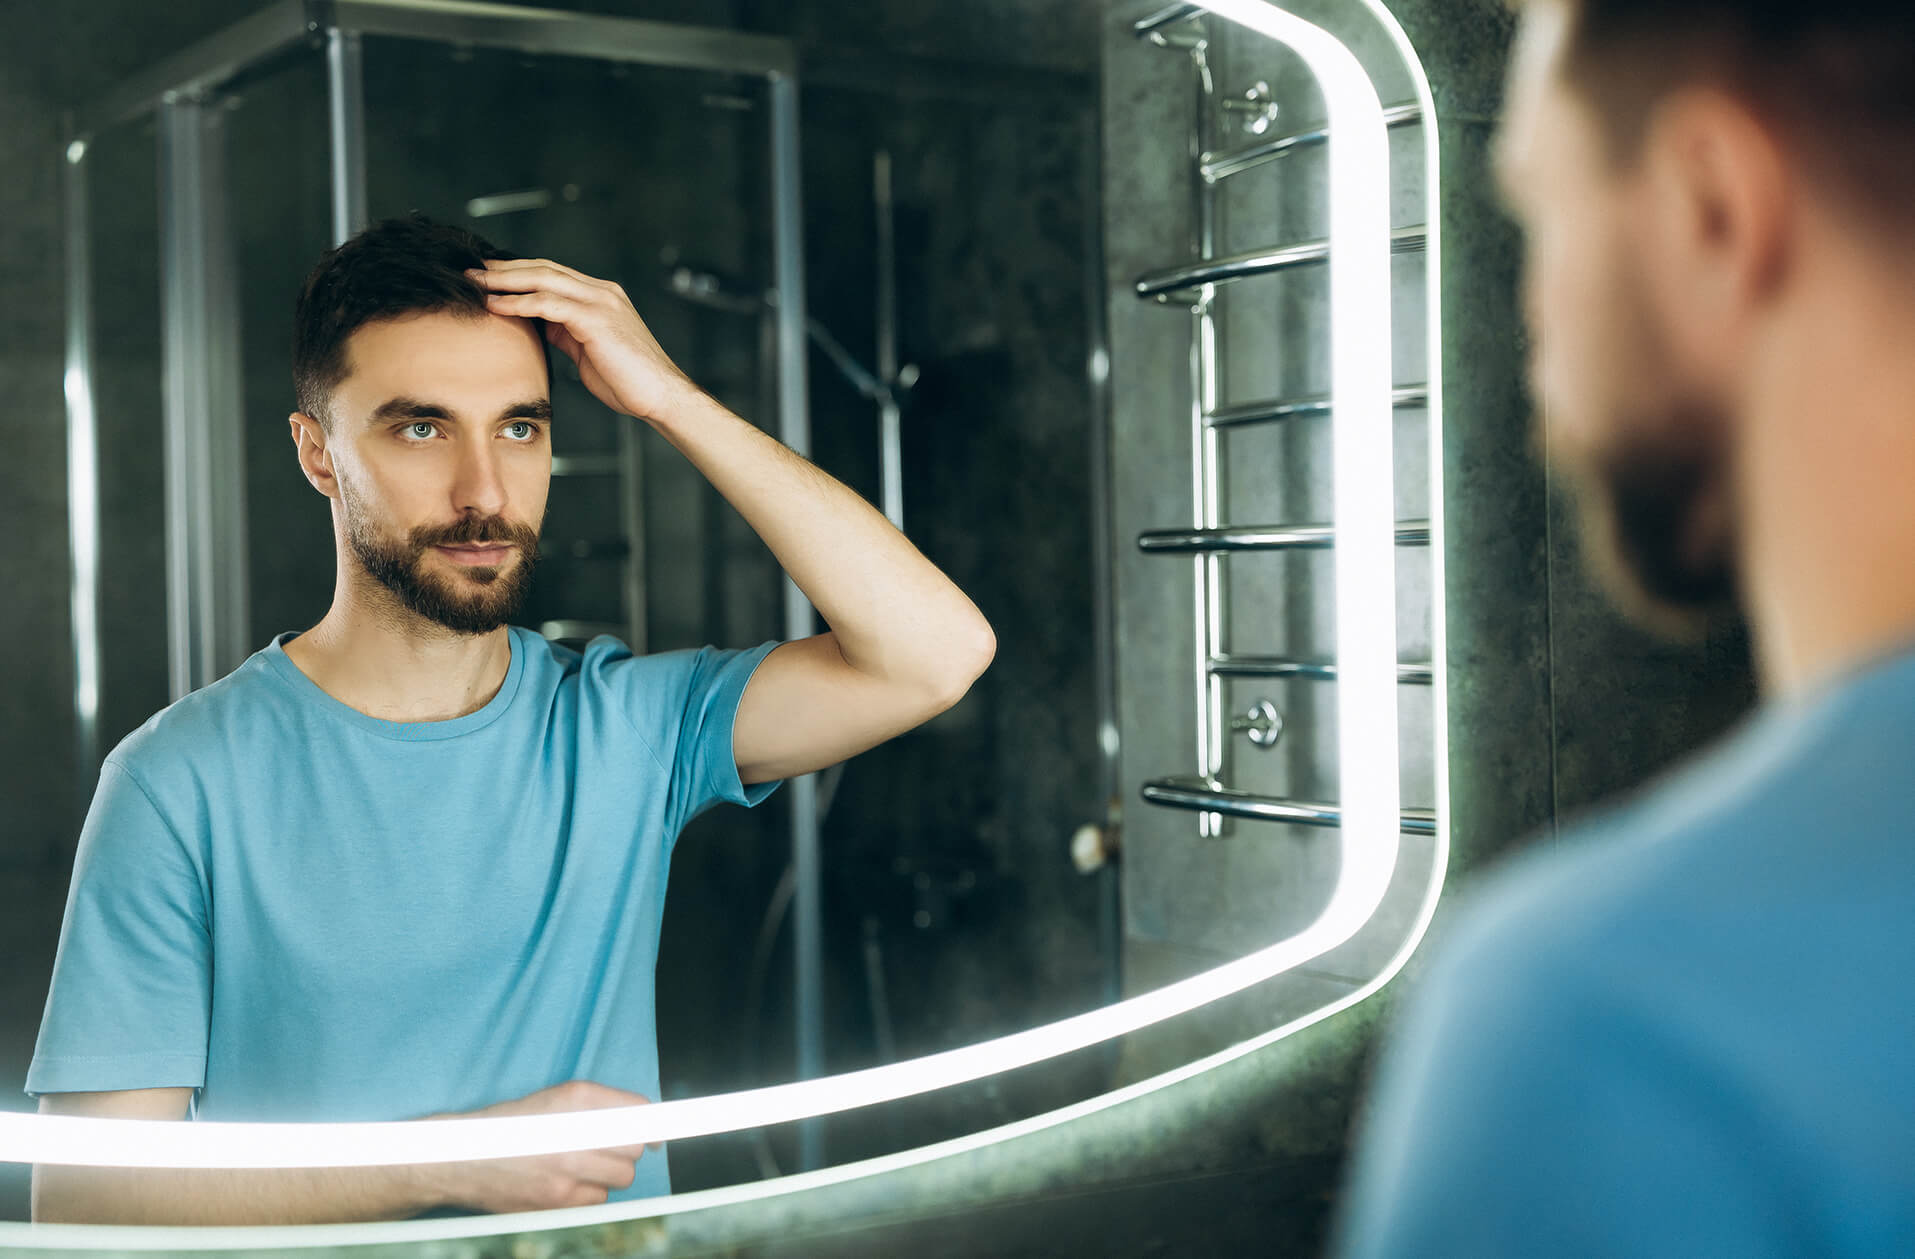 A man inspecting his hairline in a bathroom mirror